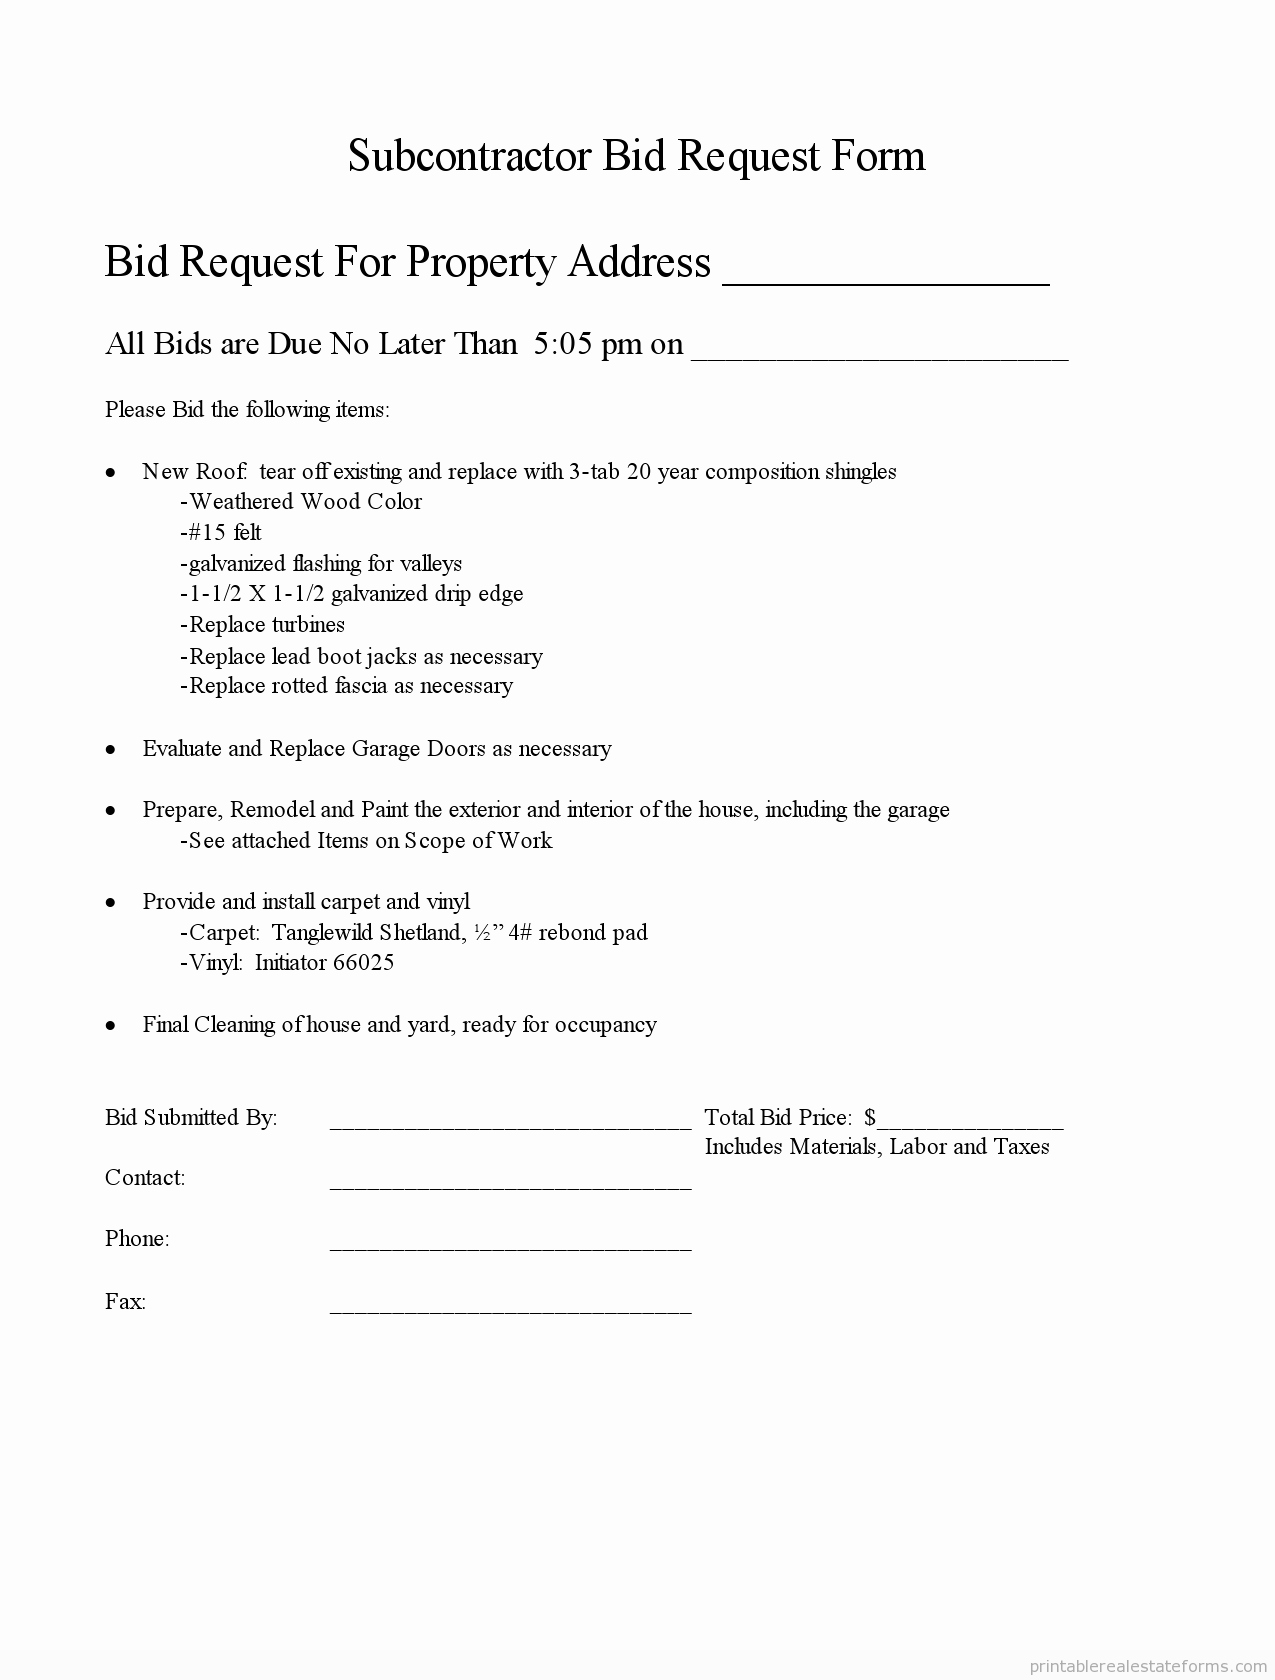 Bid Request form Template Elegant Printable Subcontractor Bid Request form and Standardized